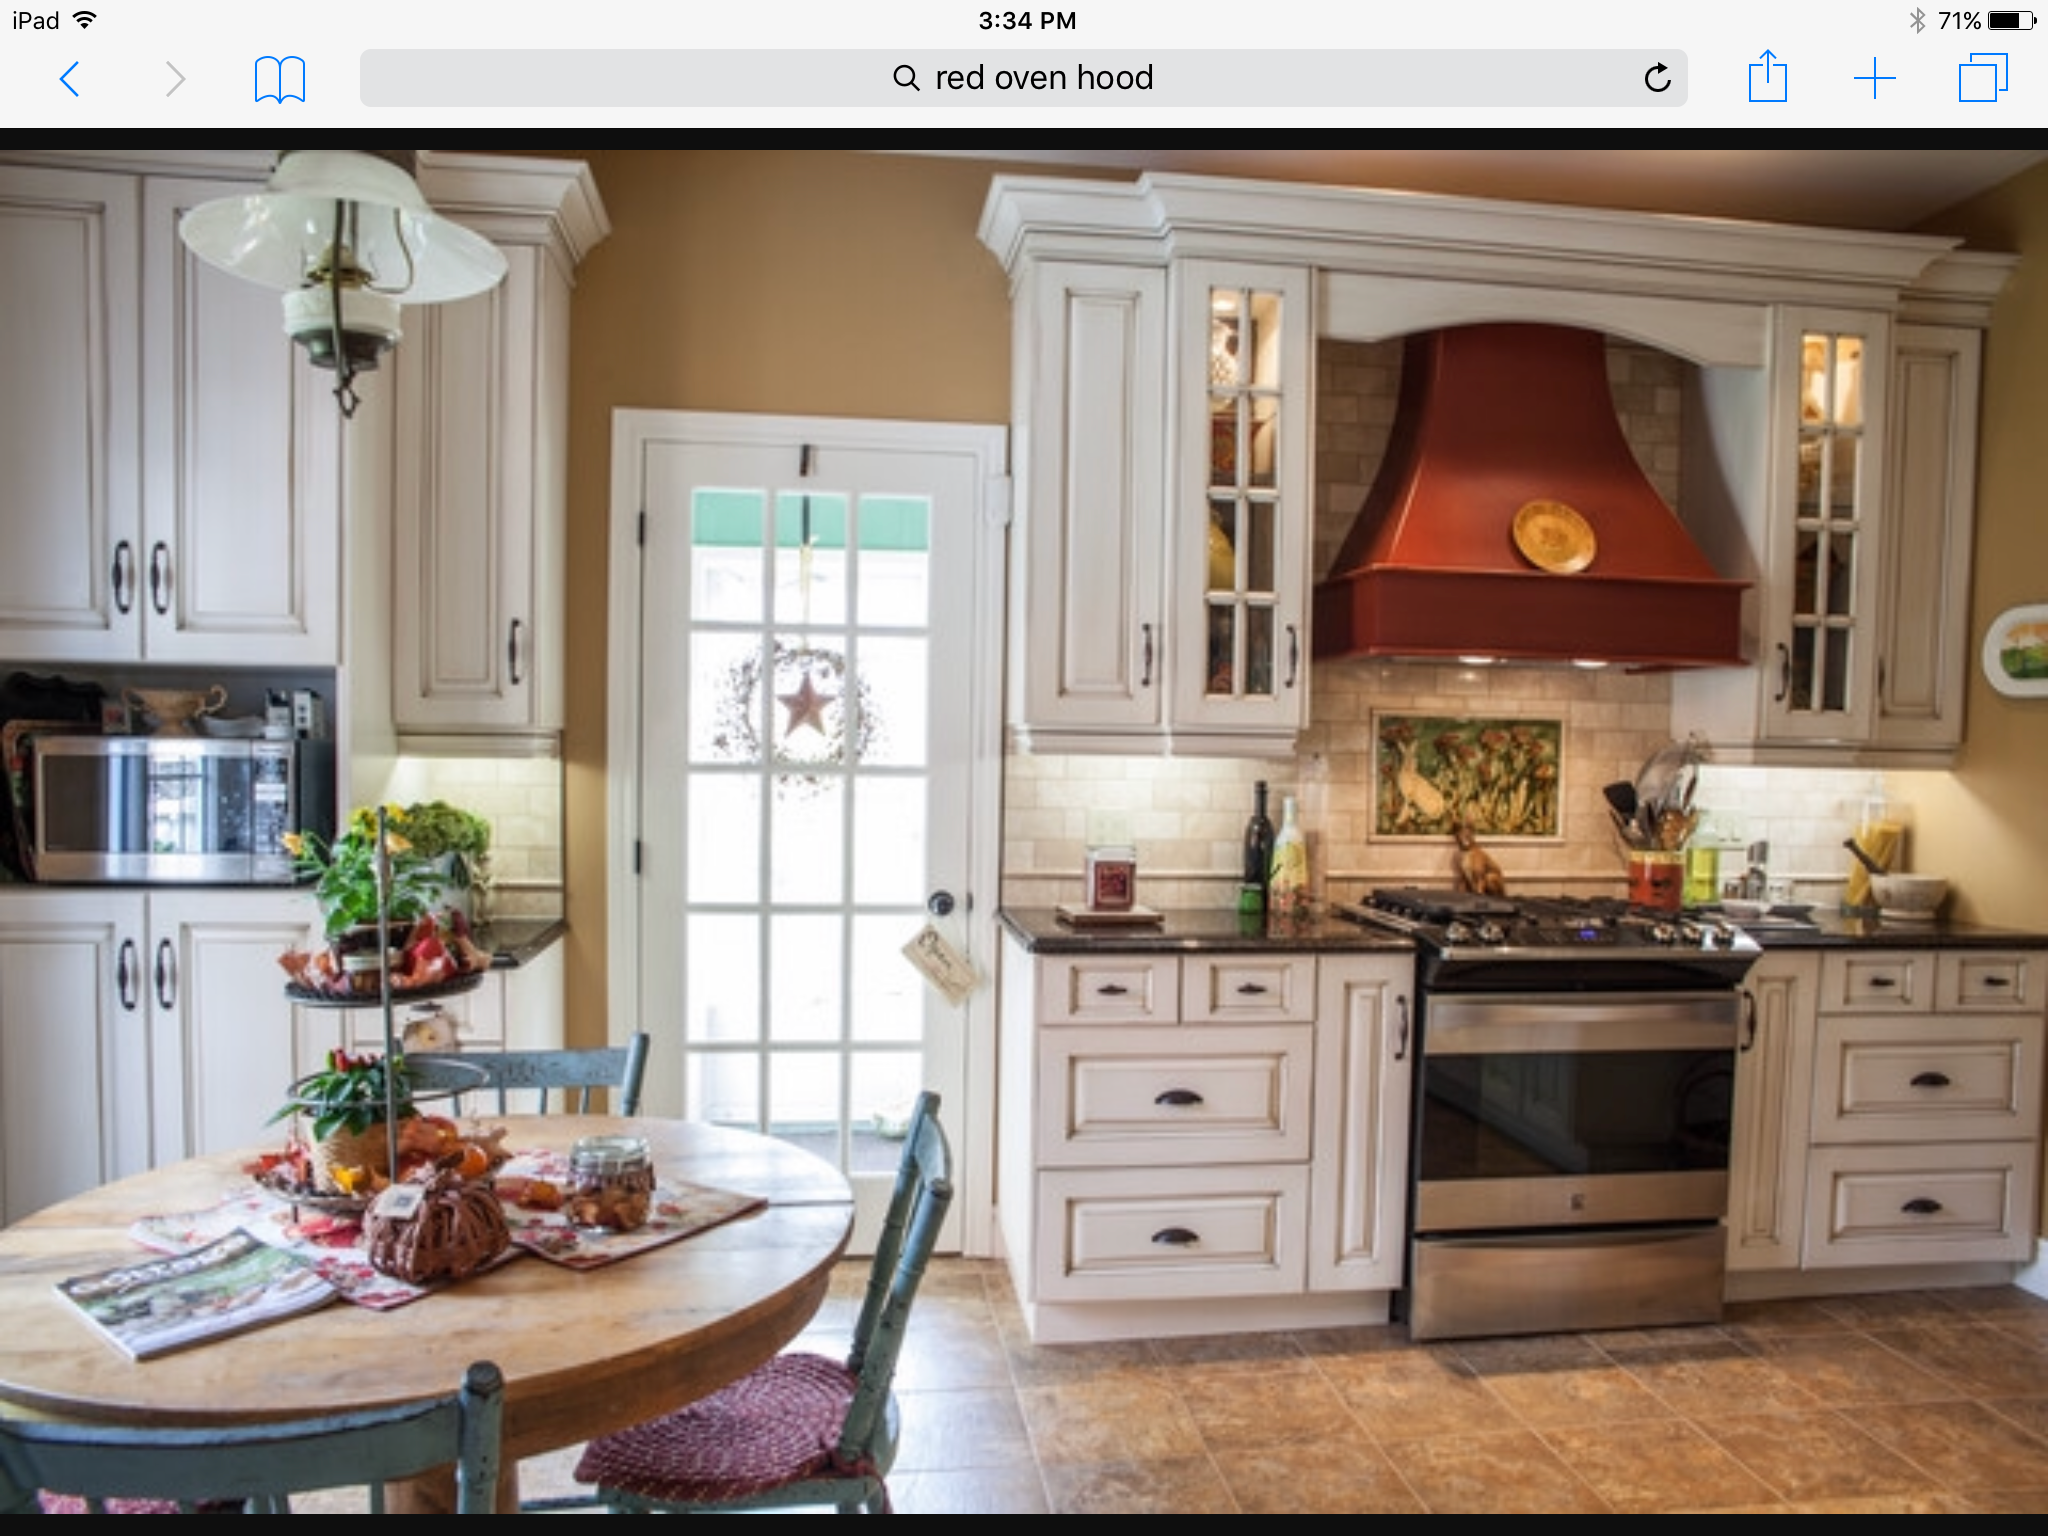 Hanging Hood Kitchen Design Ideas, Pictures, Remodel And Decor